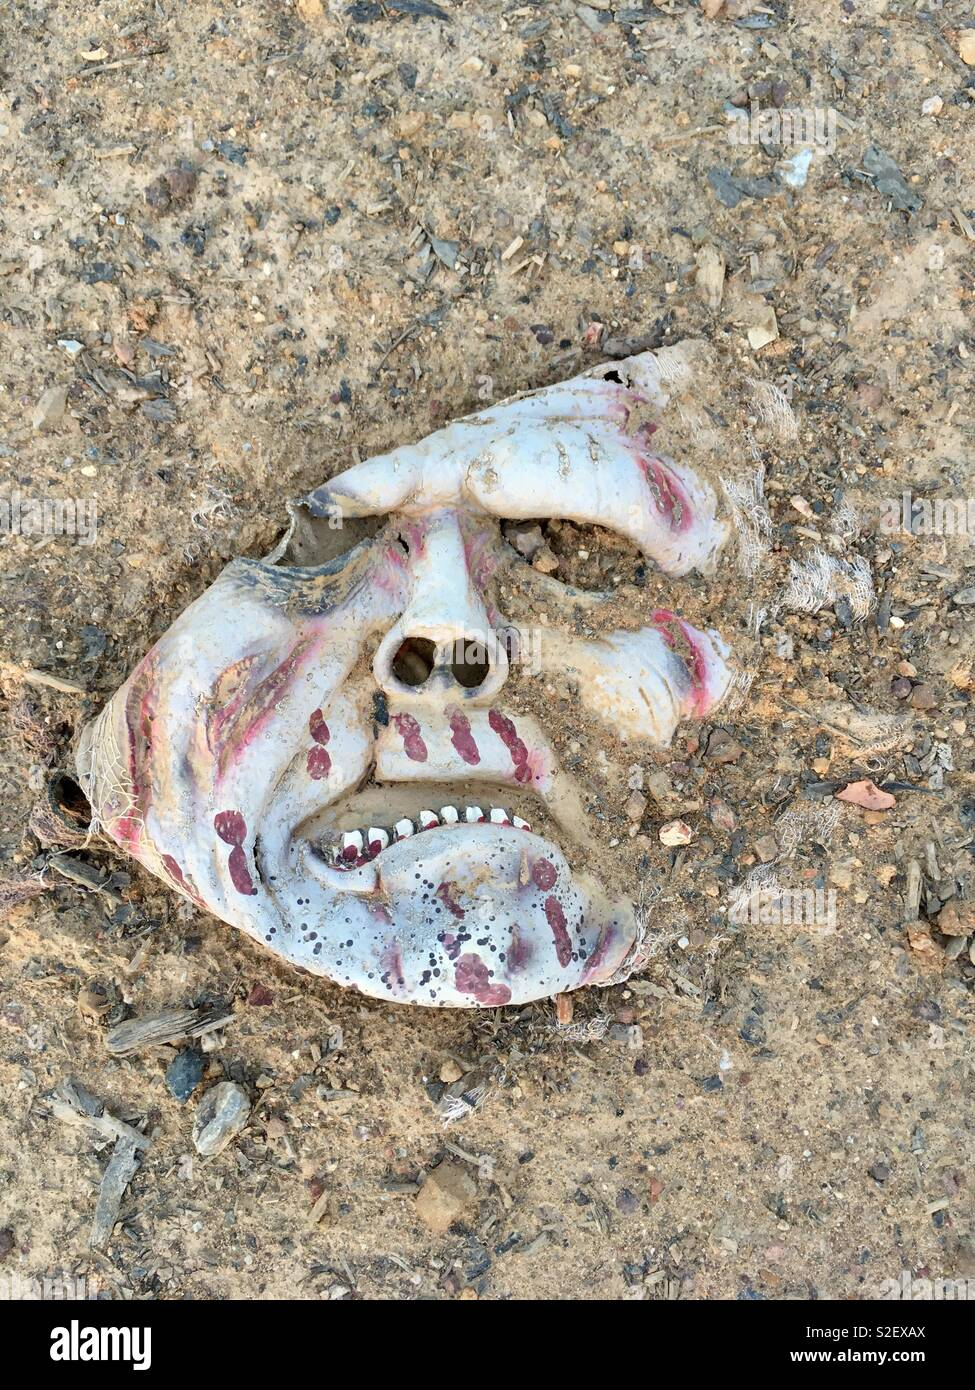 Discarded scary mask. Stock Photo